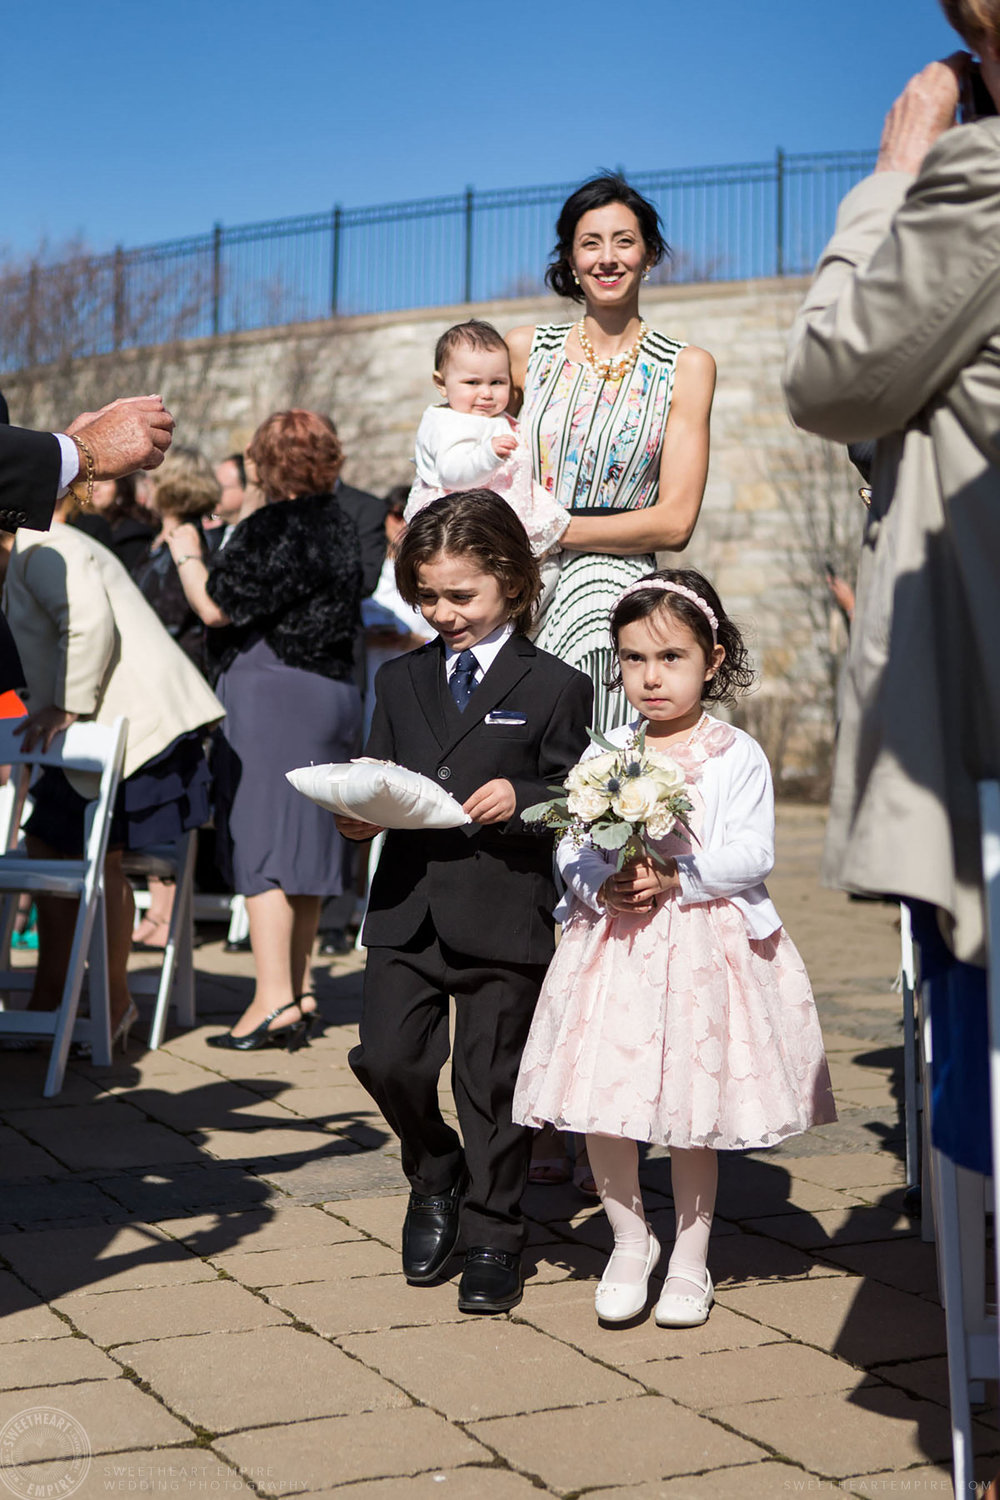 19_cutest flowergirl and ring bearer at Eagles Nest Wedding.jpg